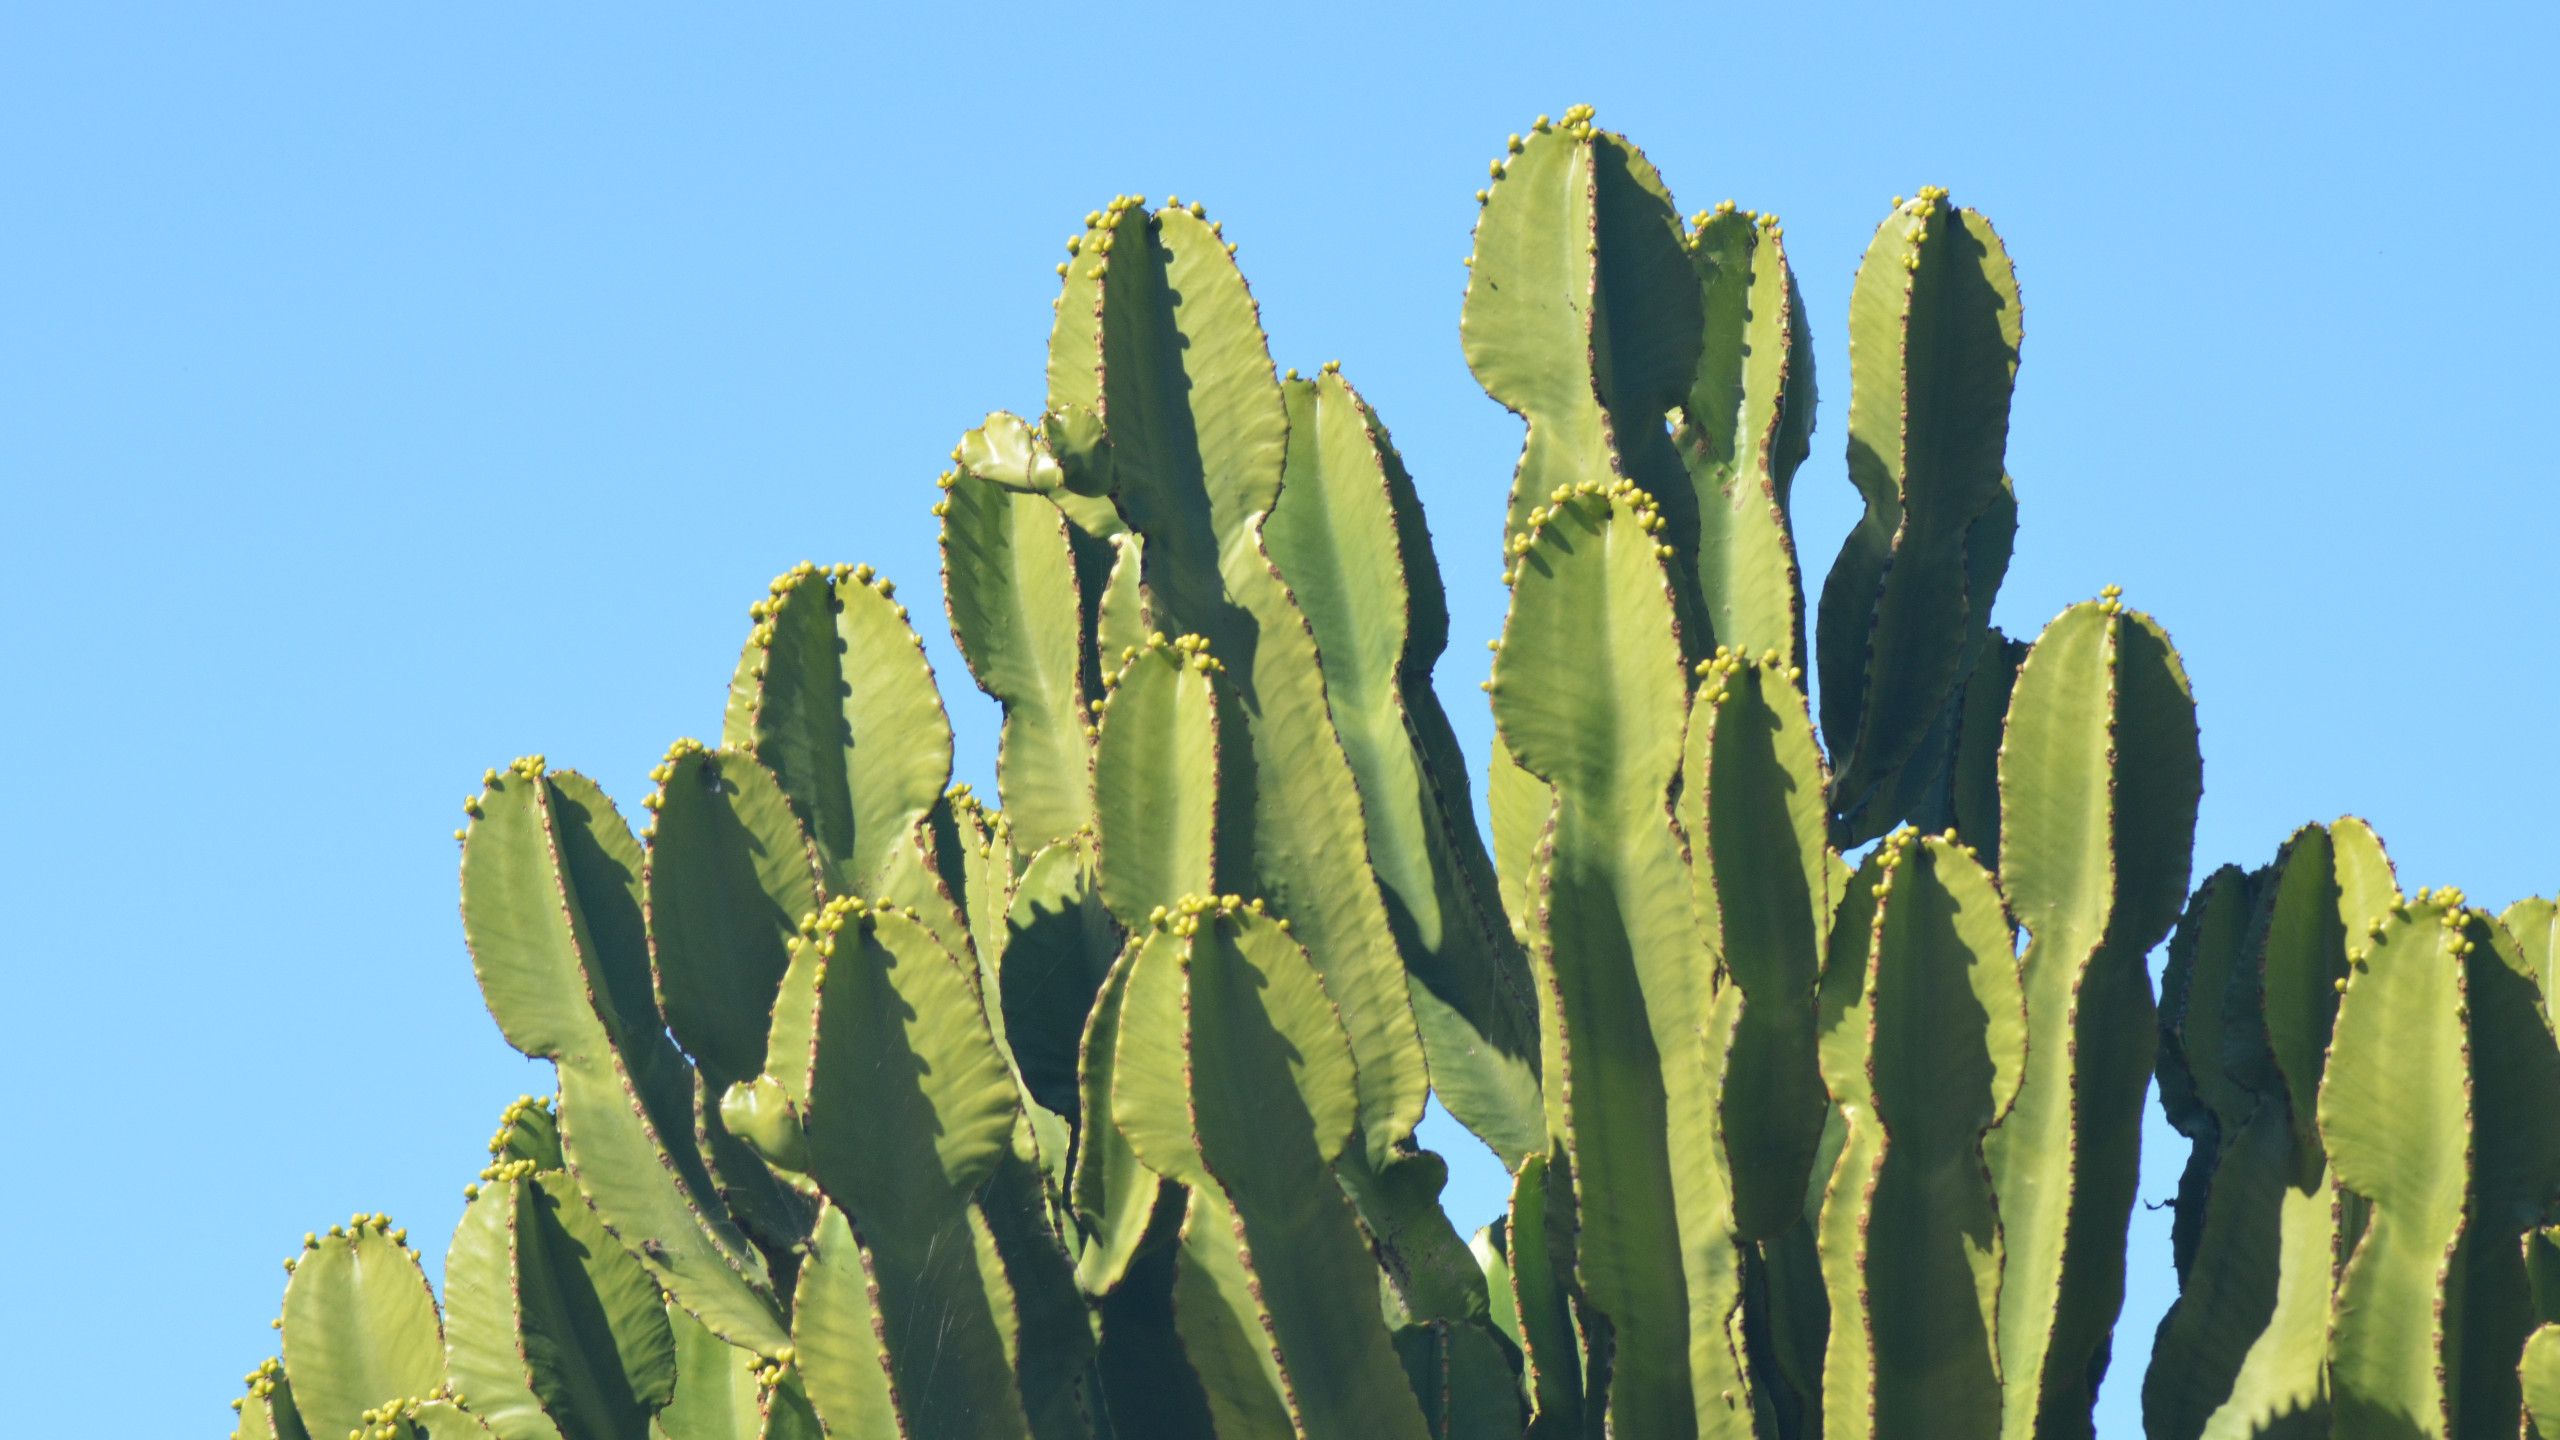 Download Cactus Wallpaper Background Pictures 49 2560x1440 Px High